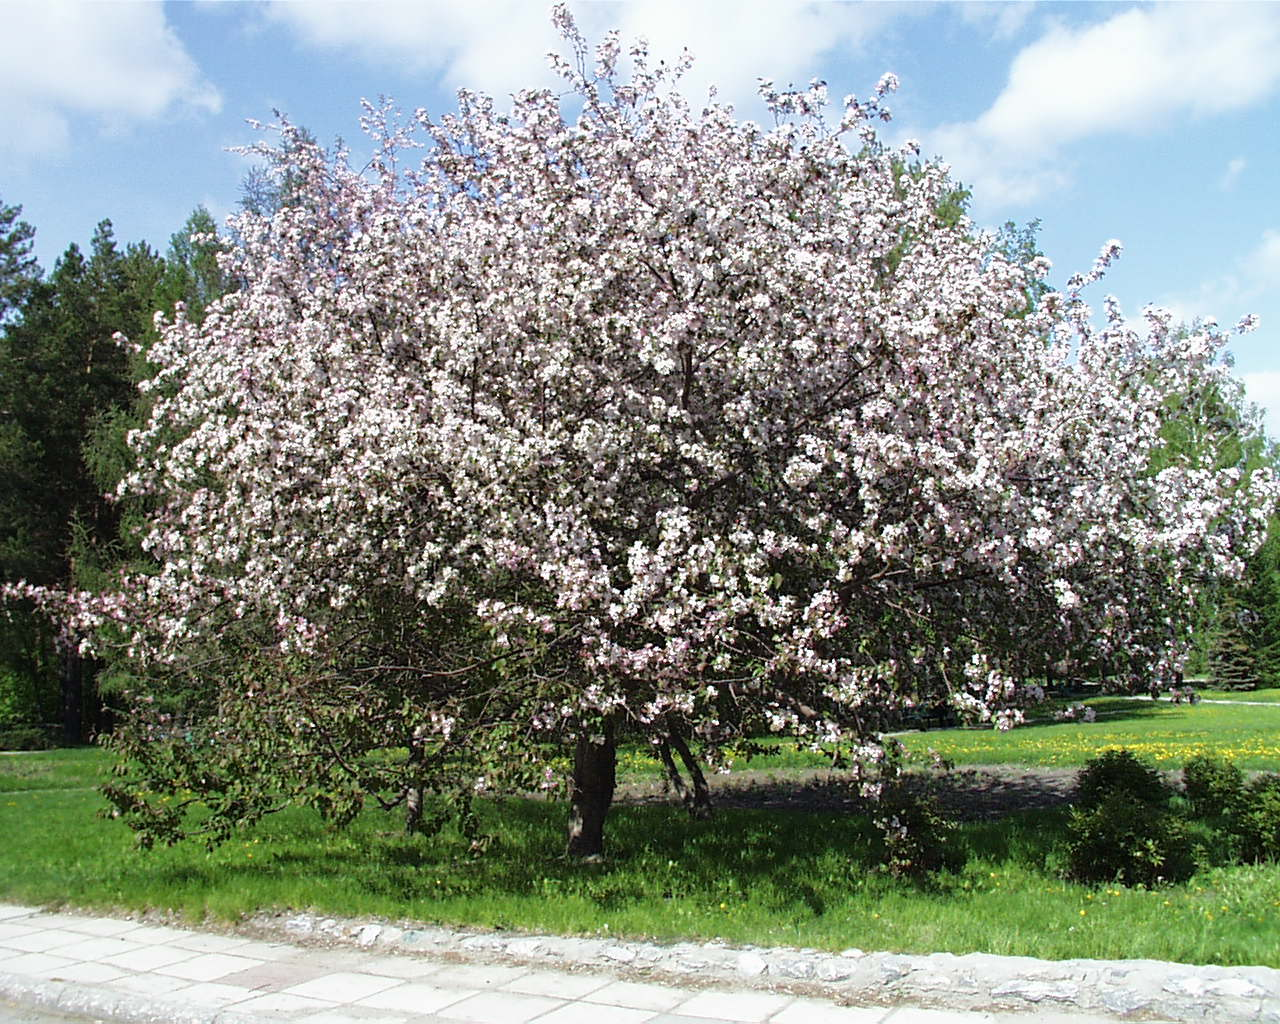 Apple-tree in blossom